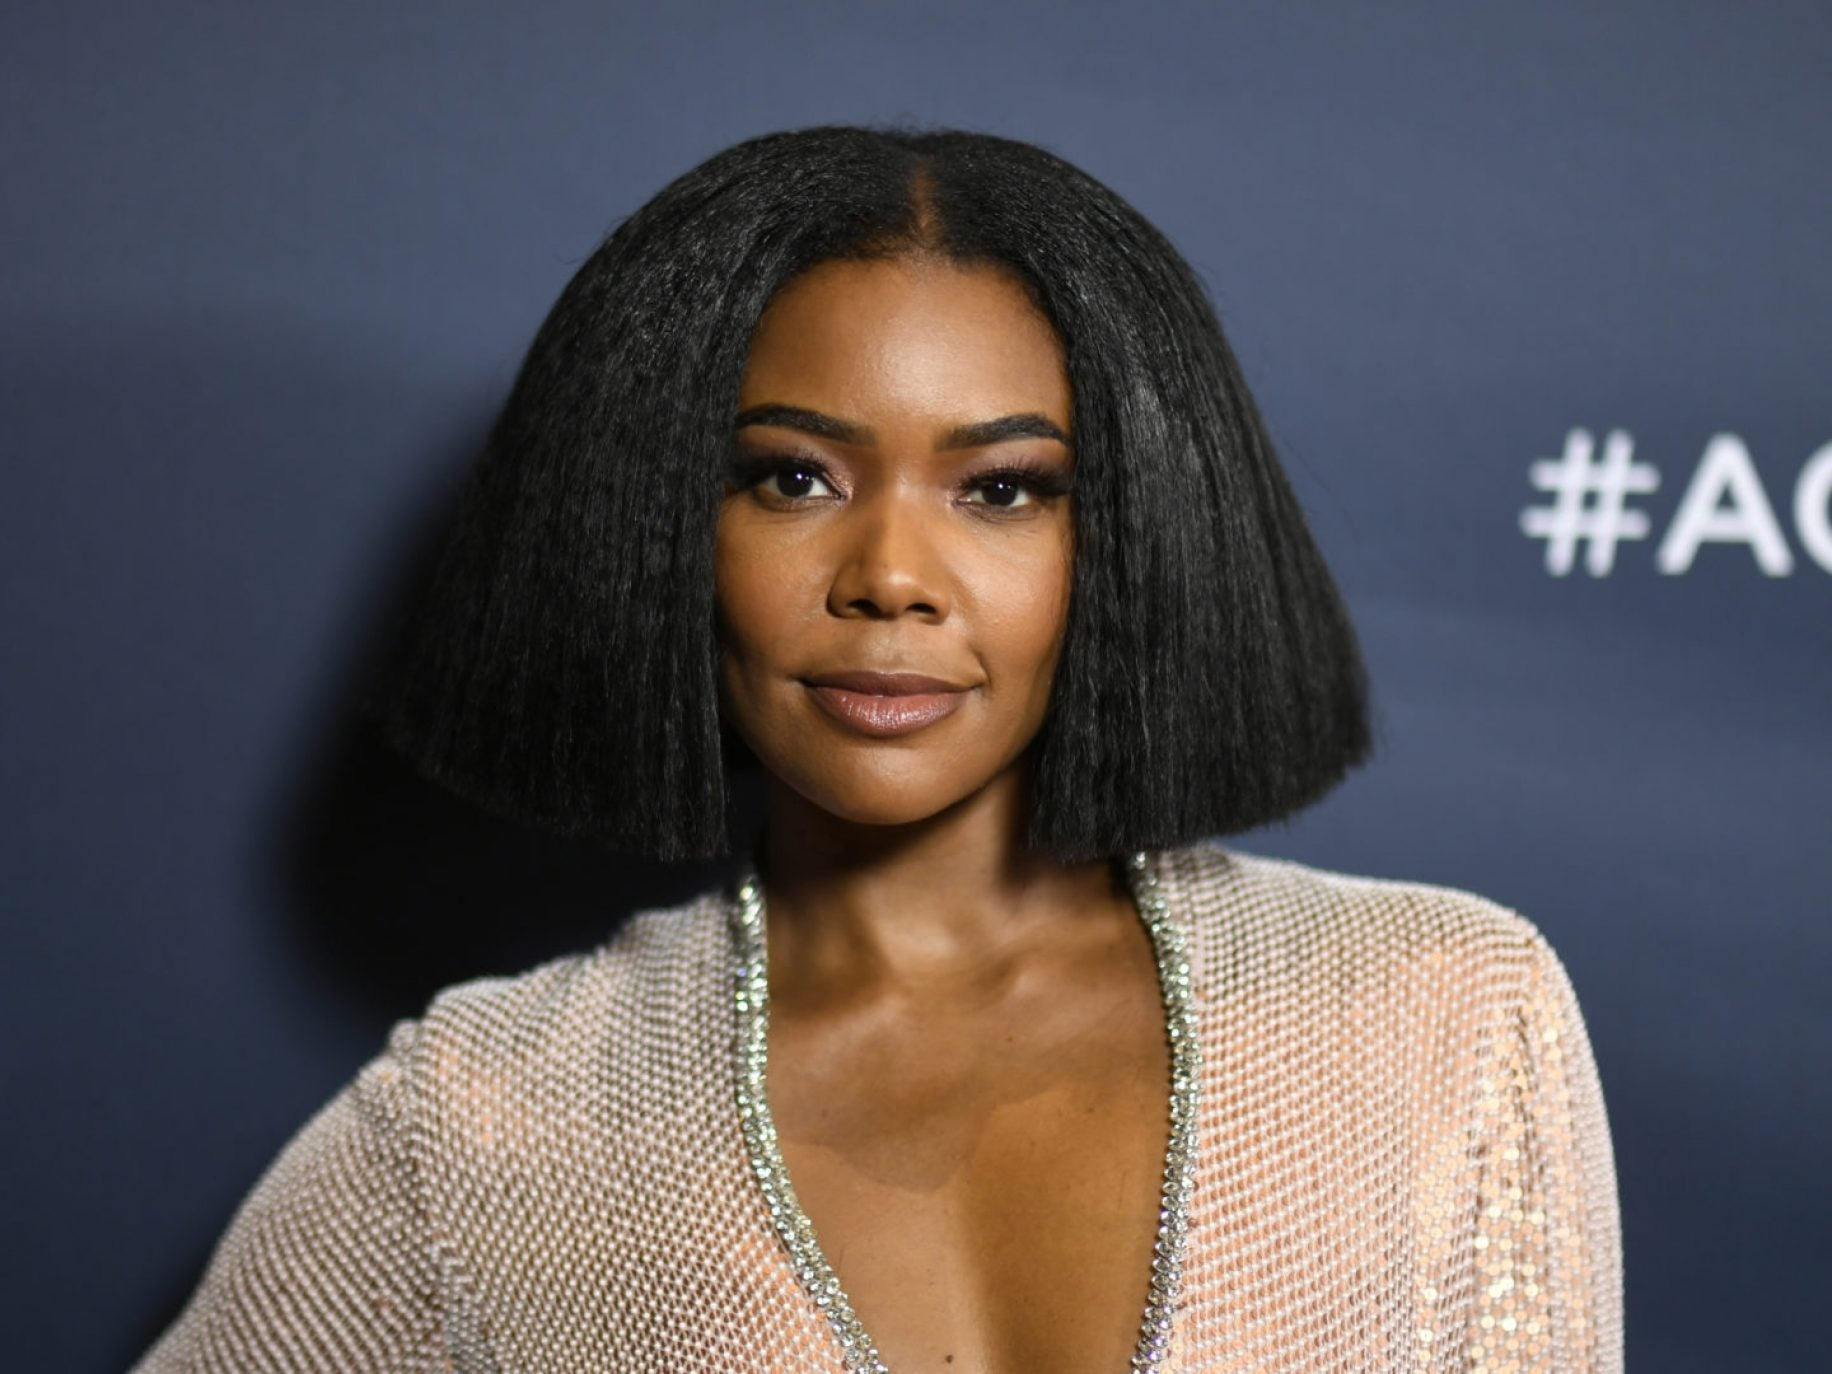 Gabrielle Union Claps Back At Terry Crews 'Today' Comments